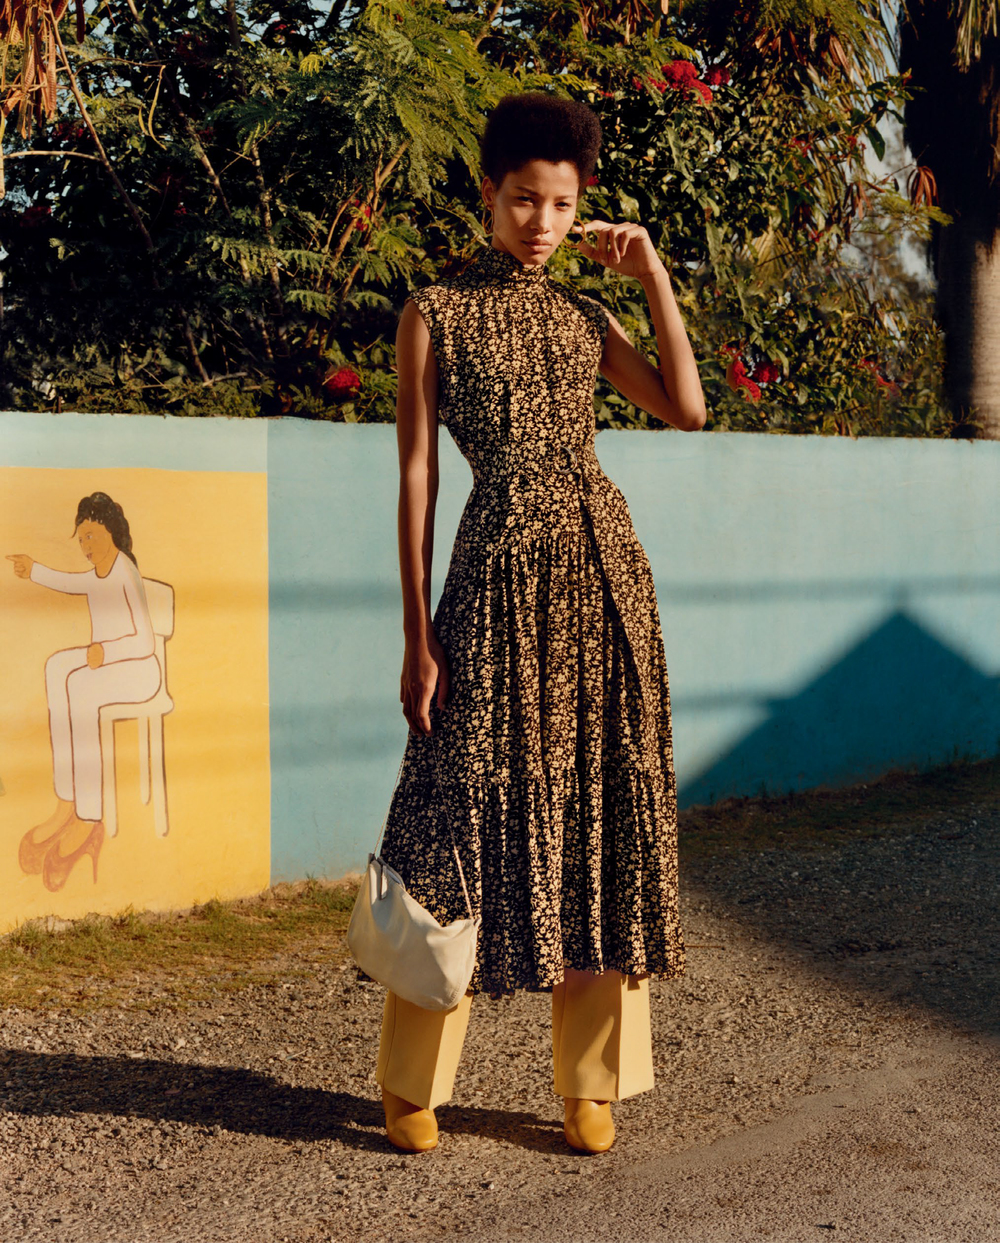 LINEISY-MONTERO-AND-TAMI-WILLIAMS-BY-JAMIE-HAWKESWORTH-FOR-VOGUE-US-JUNE-2016-7.jpg